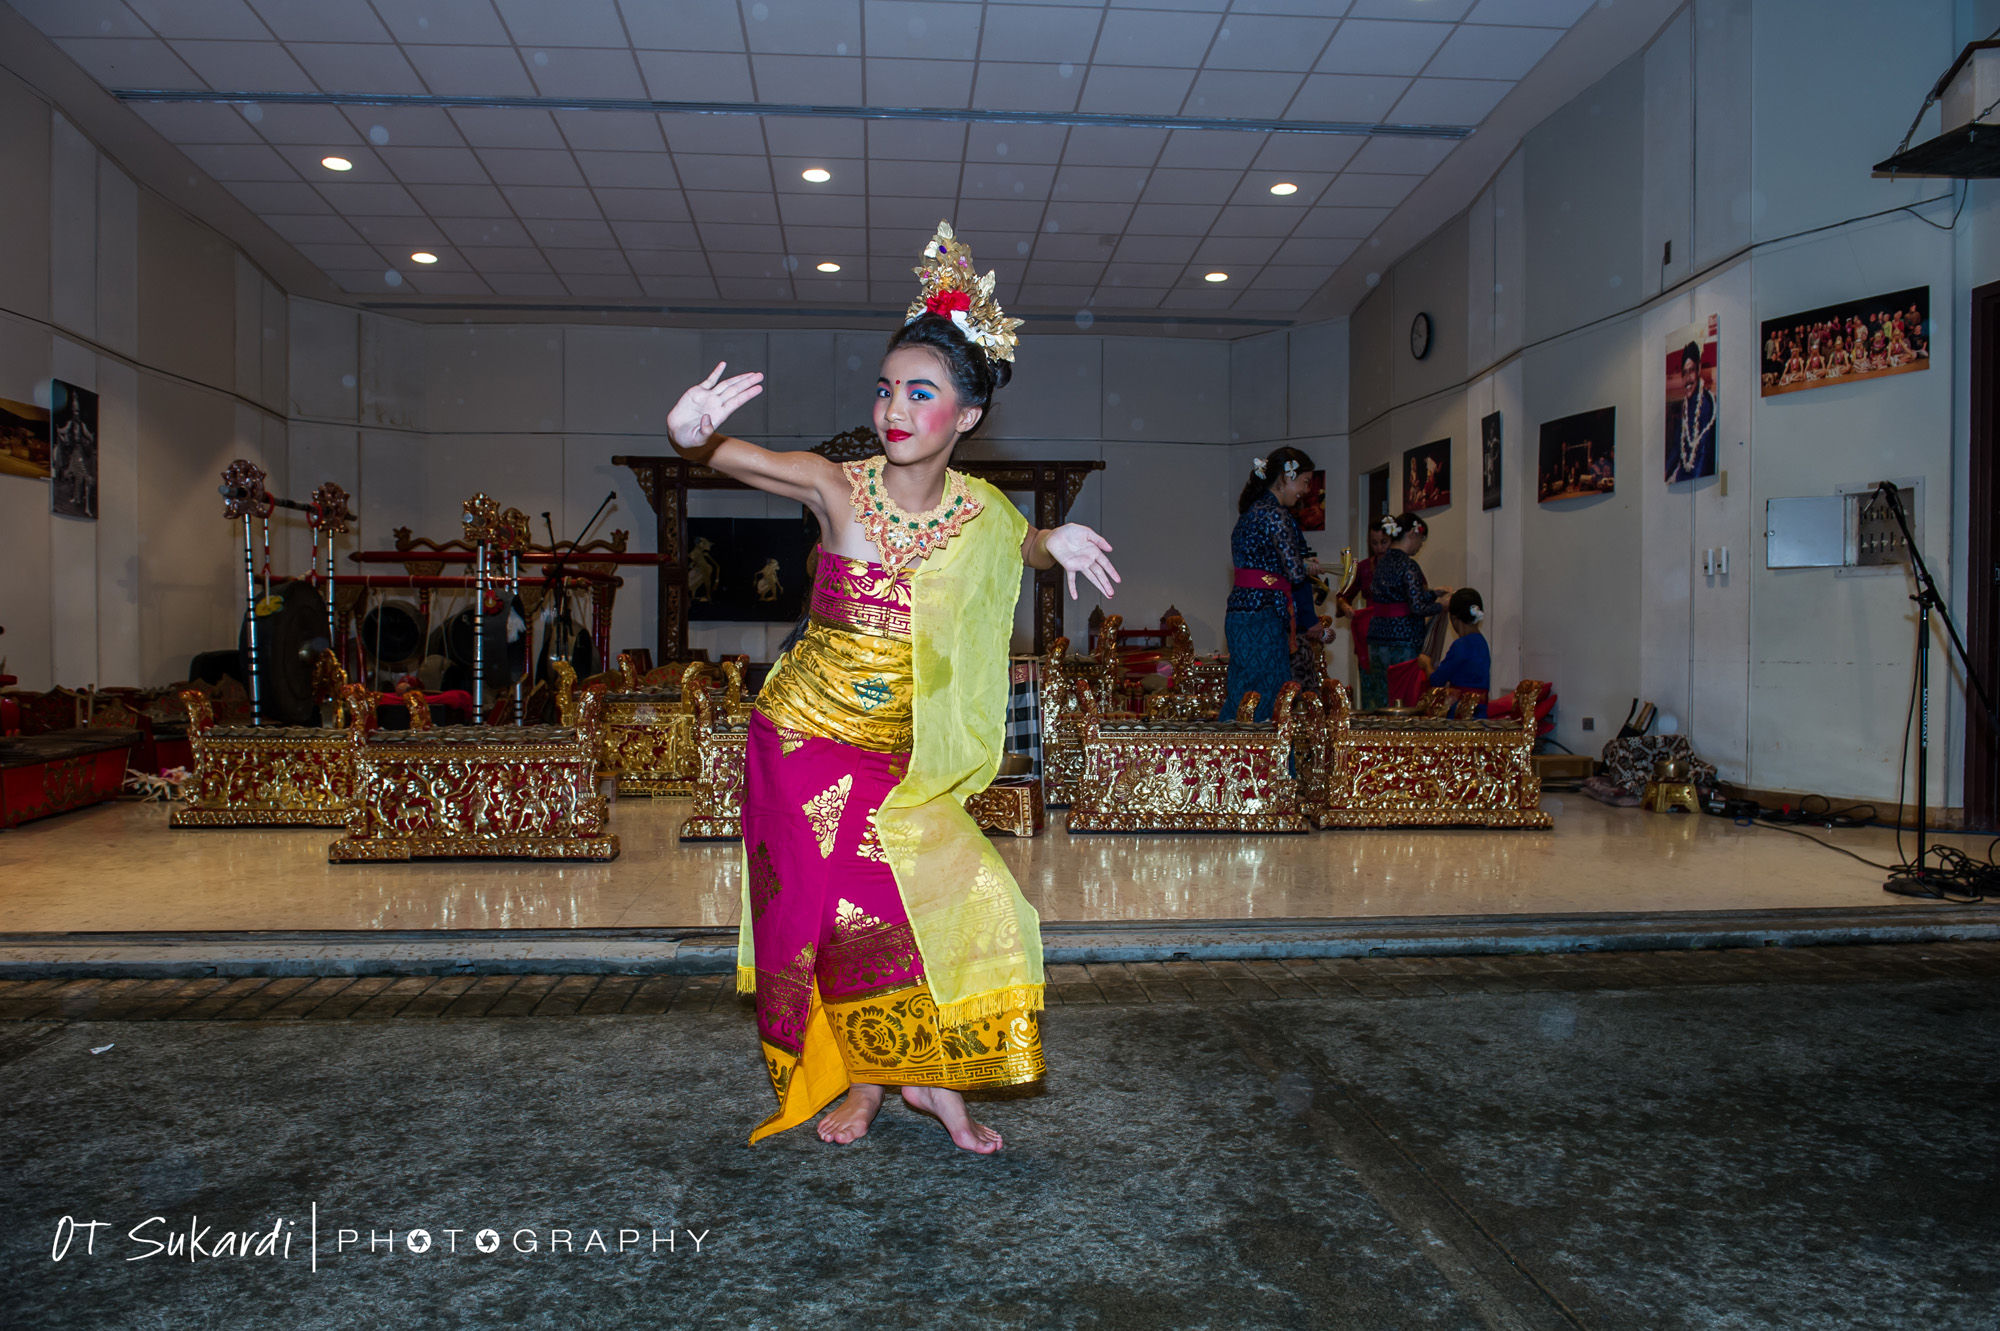 girl performer poses in ornate pink and yellow costume